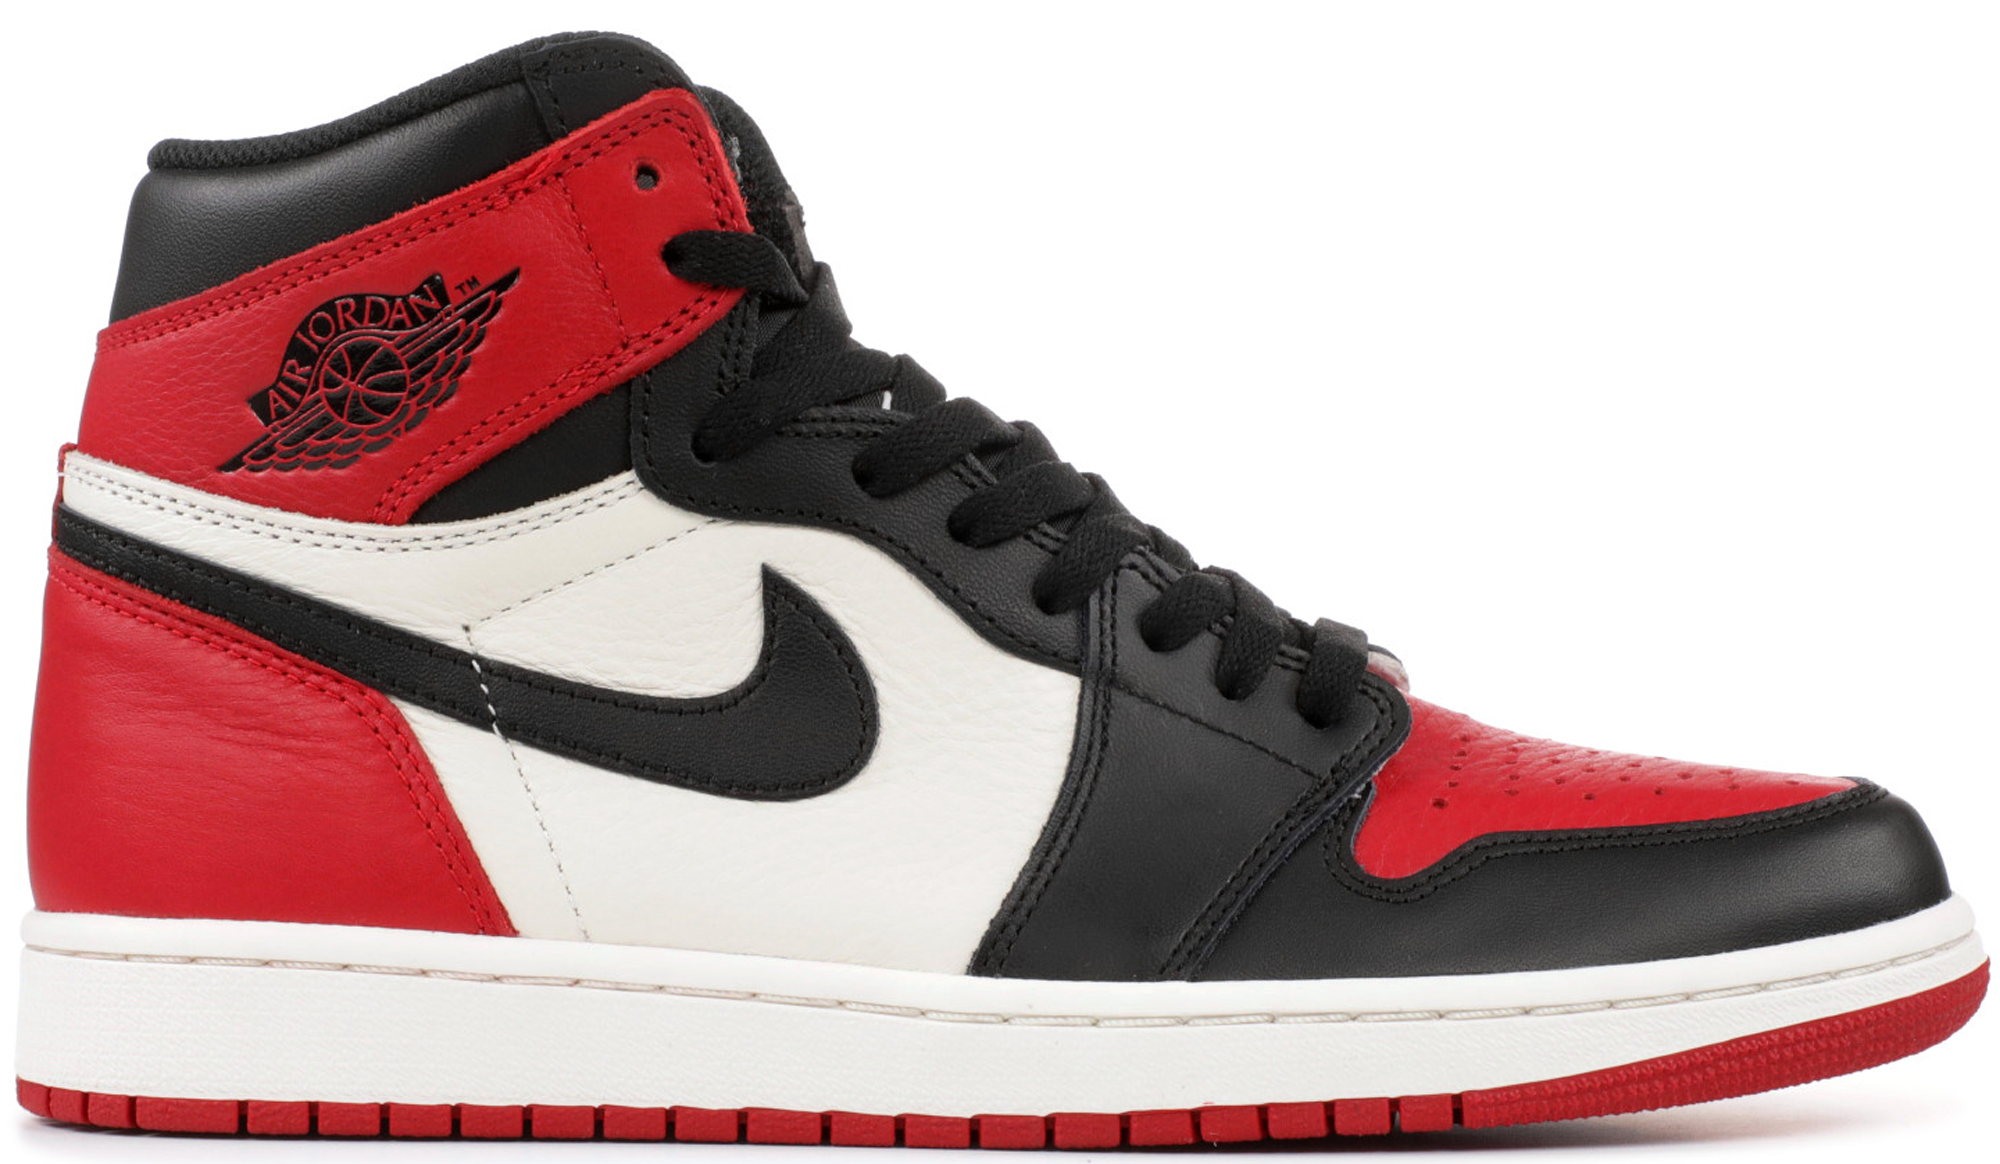 air jordan i retro high 'bred toe' price